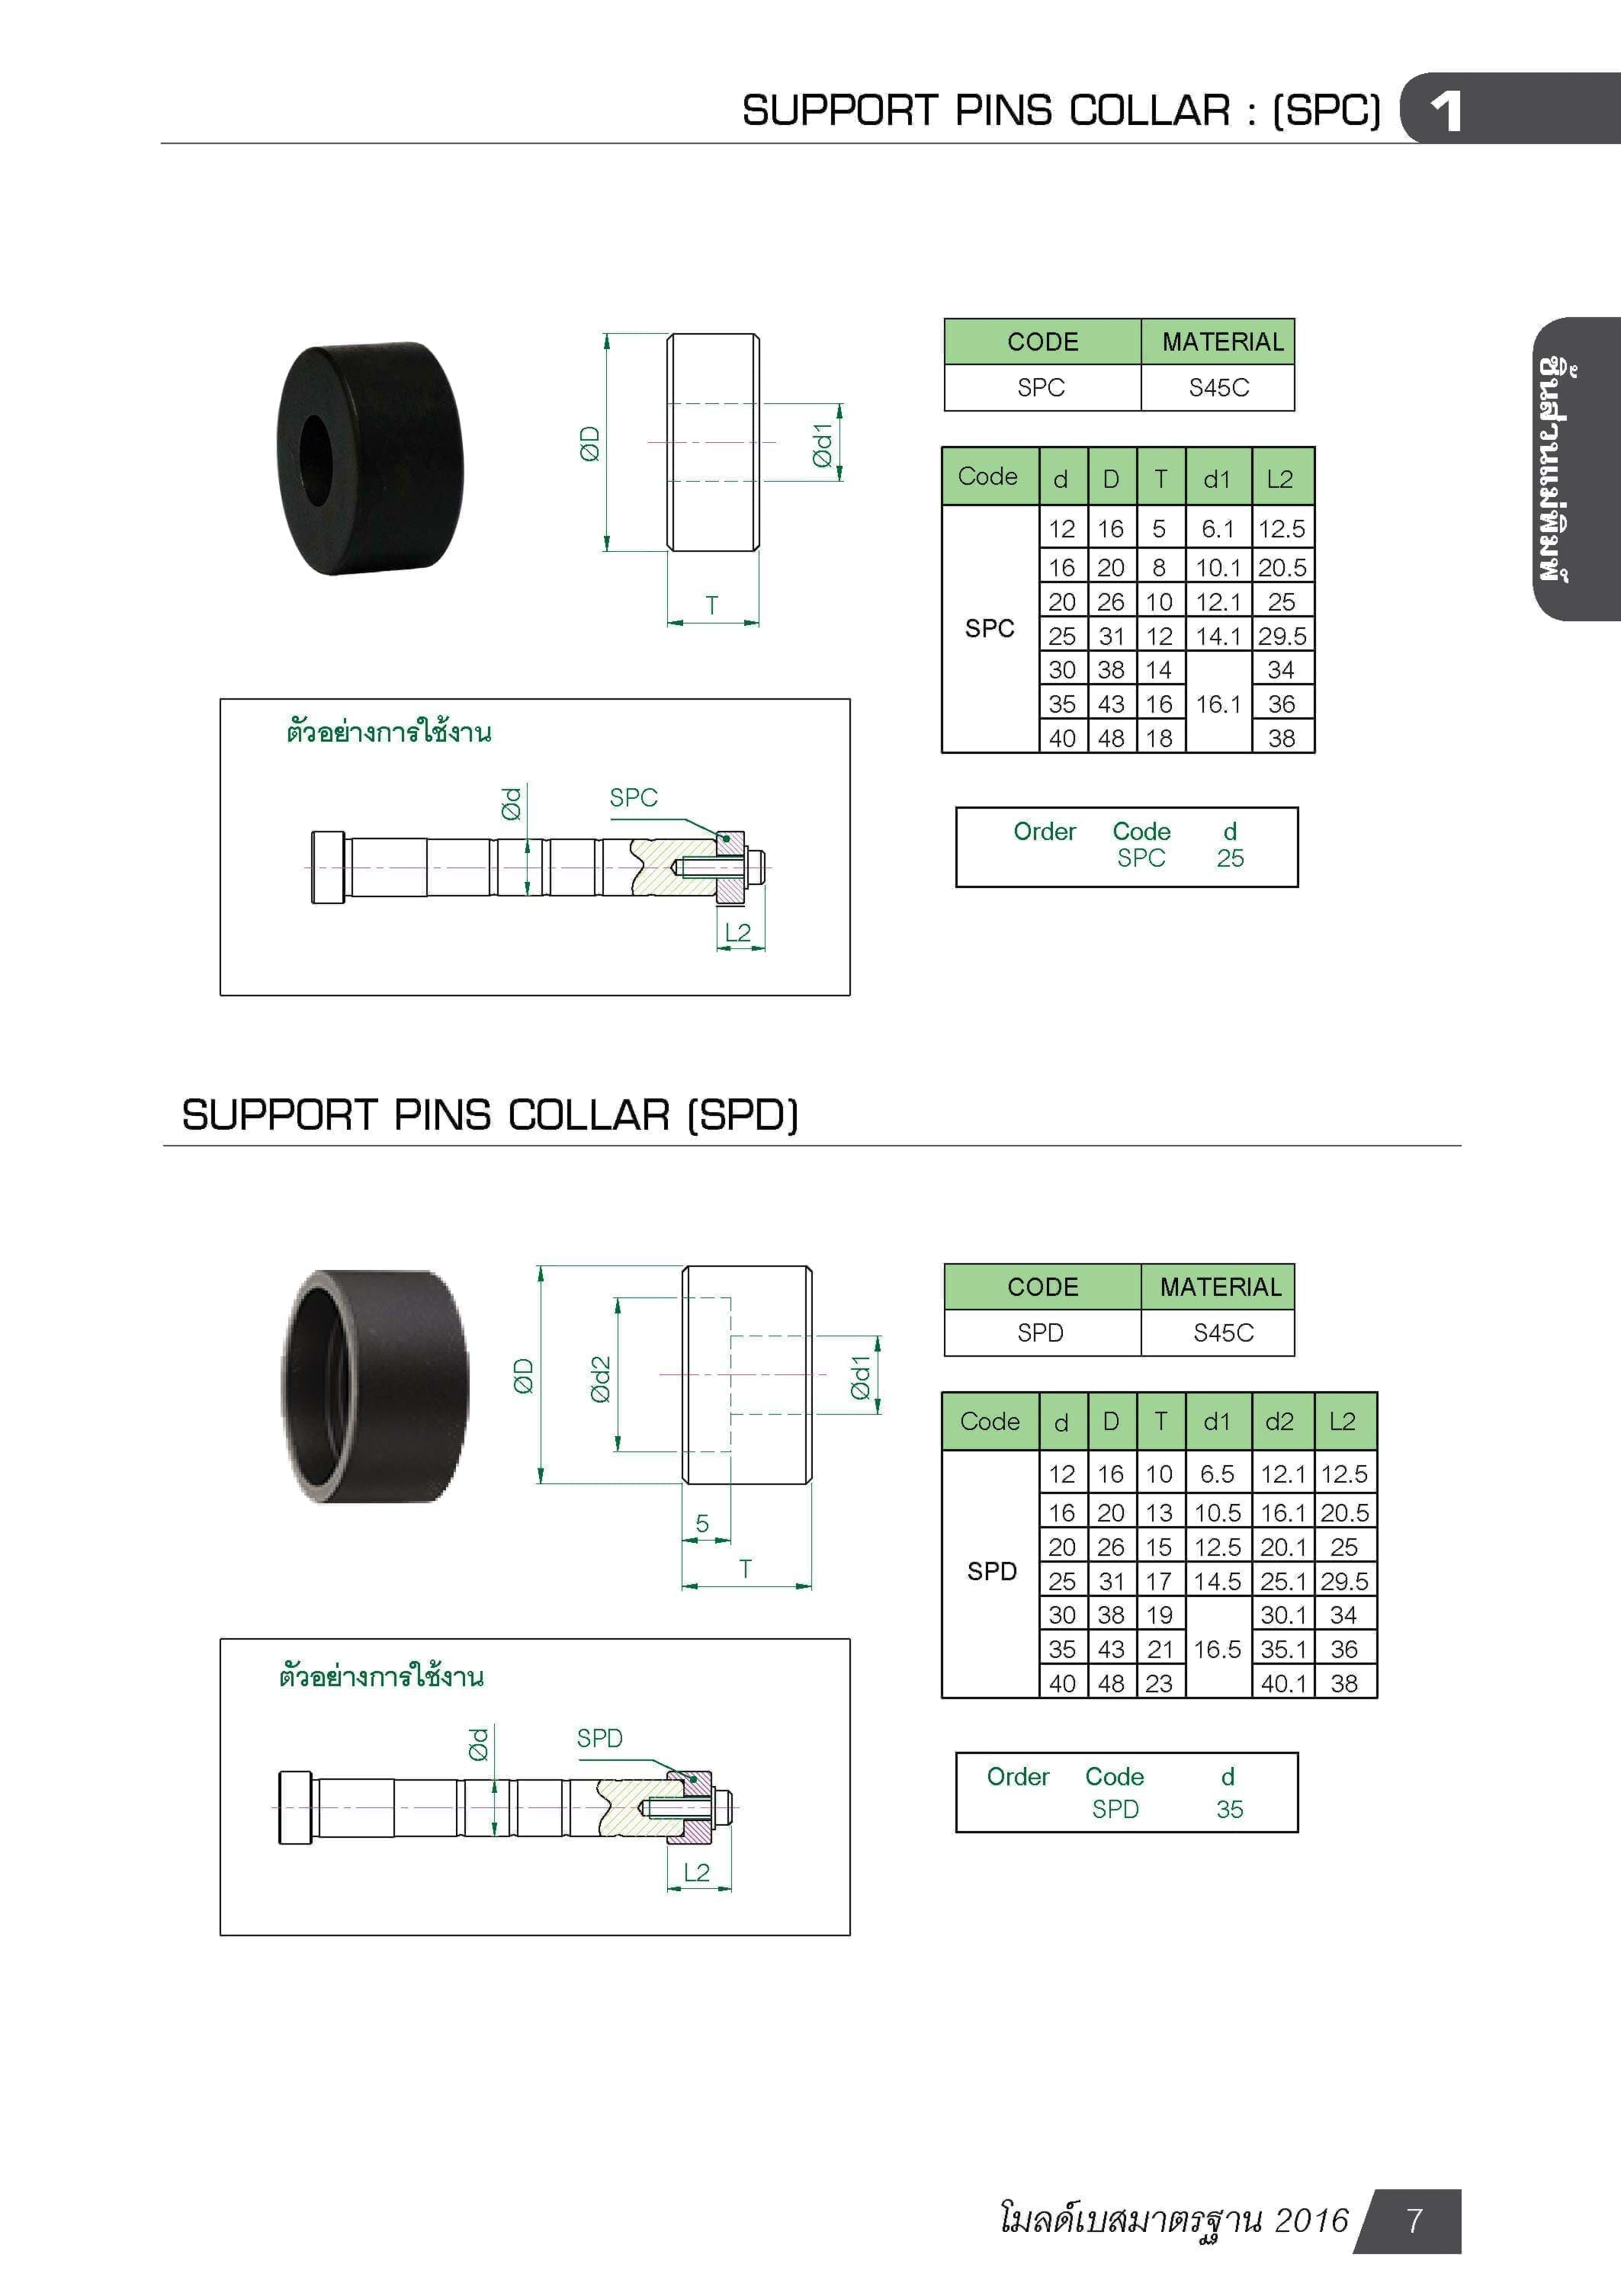 SUPPORT PINS COLLAR (SPD) MB00702